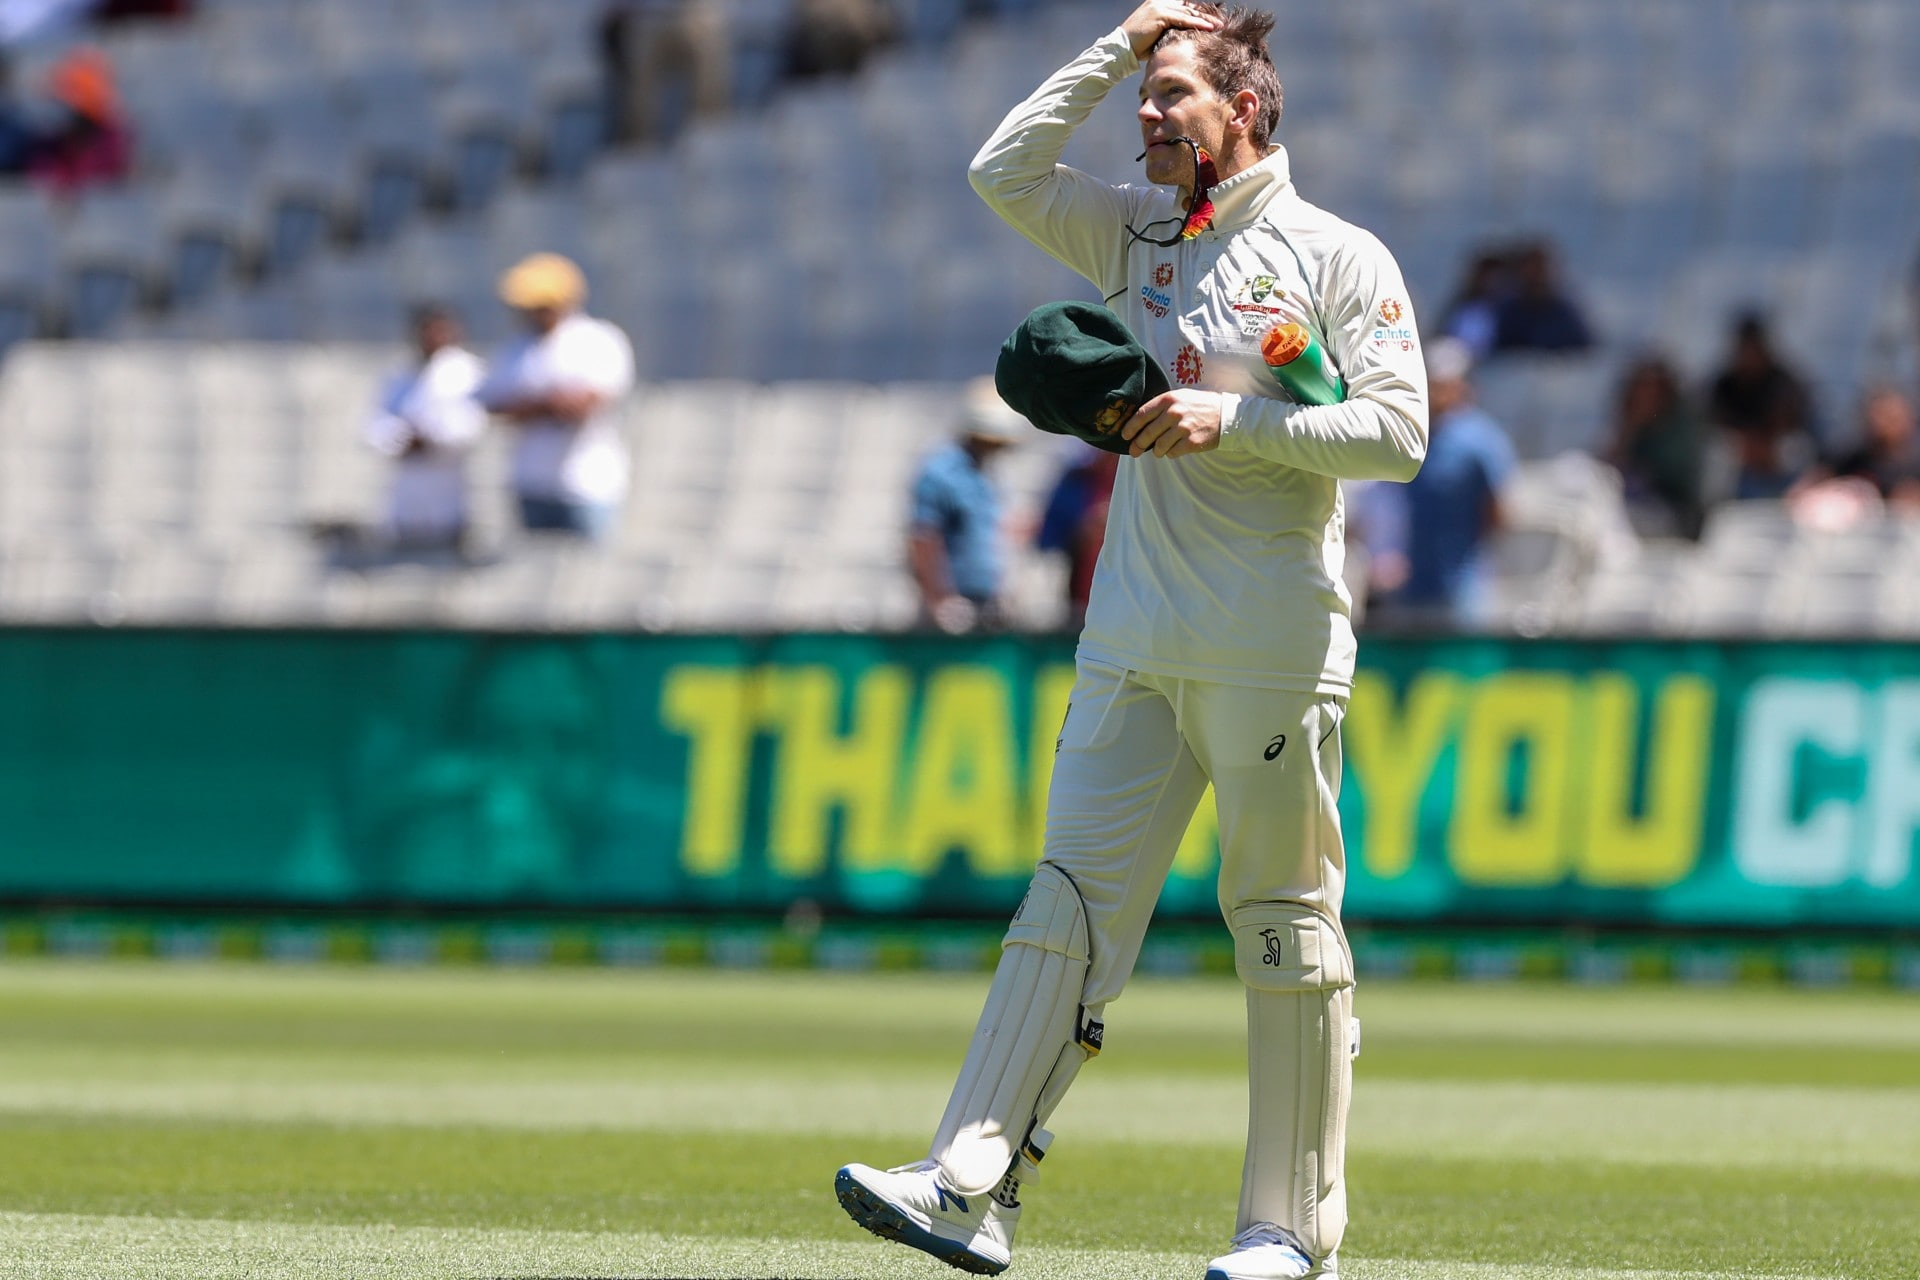 Abuse Displays a Weakness of Character: Greig Chappell's Open Letter to Tim Paine